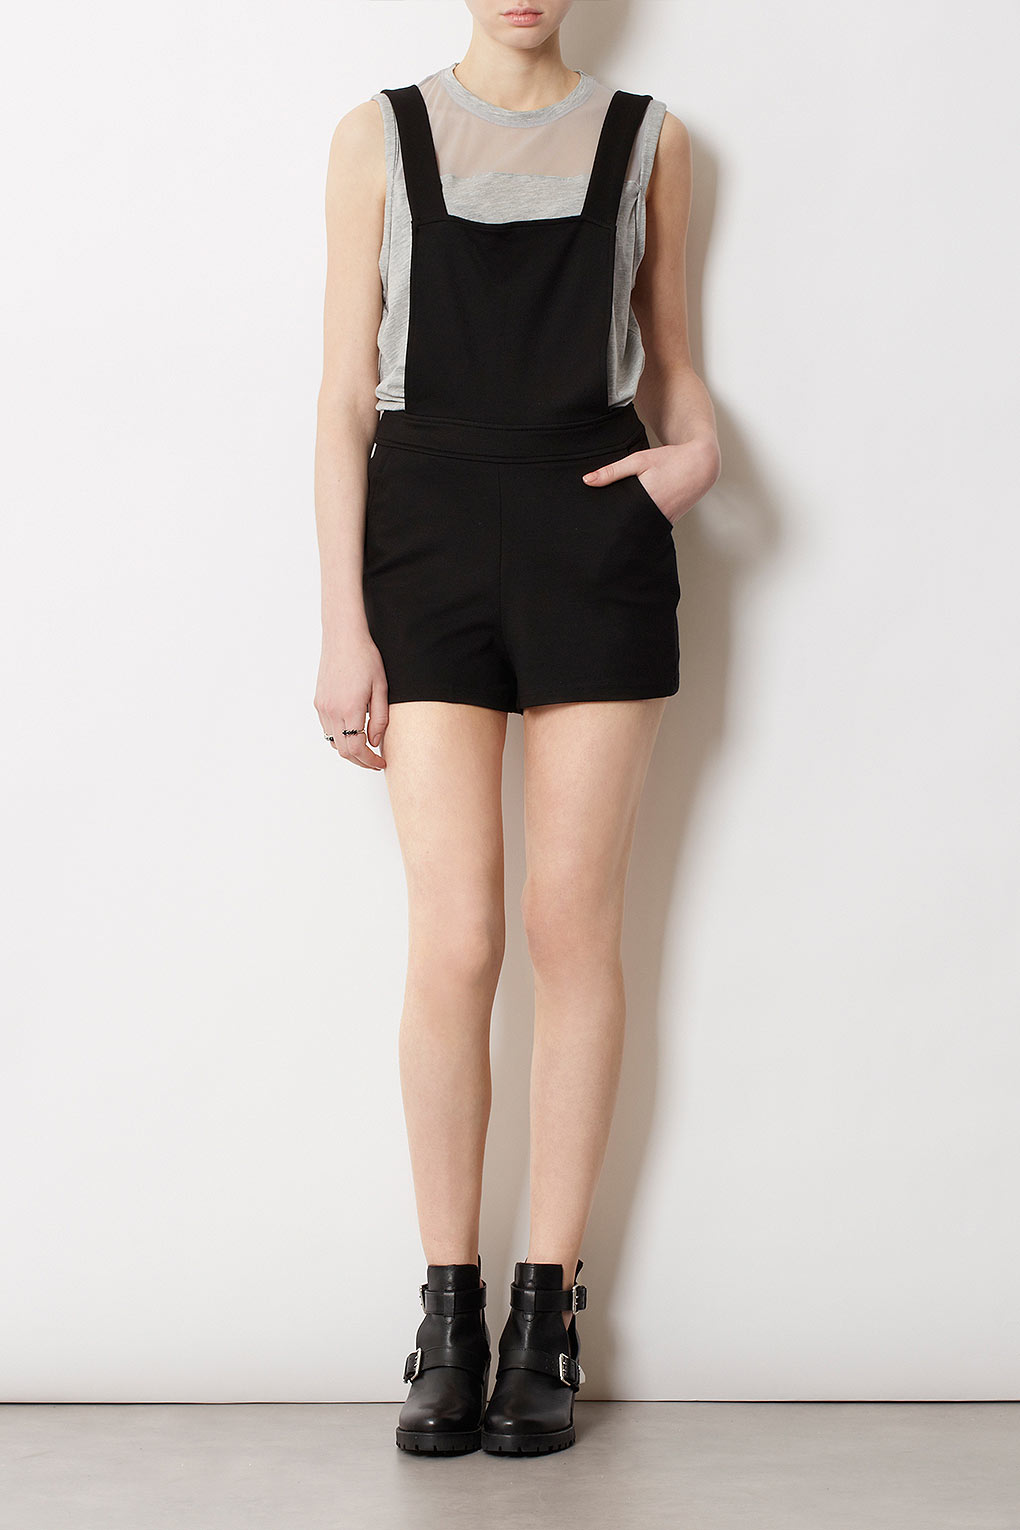 58cd90dfbad7 TOPSHOP Pinafore Playsuit in Black - Lyst